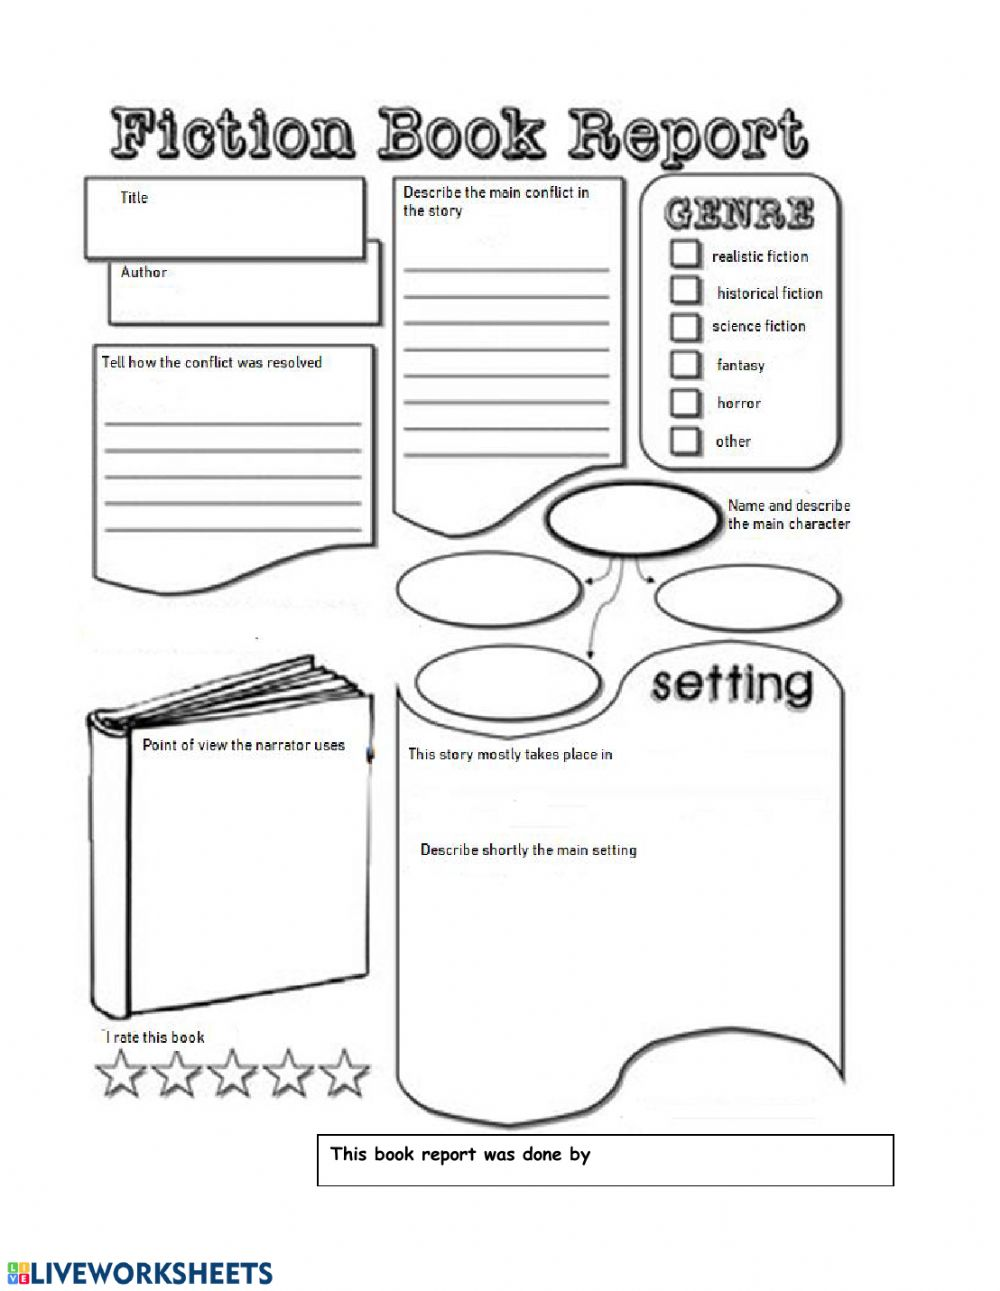 medium resolution of Fiction book report worksheet